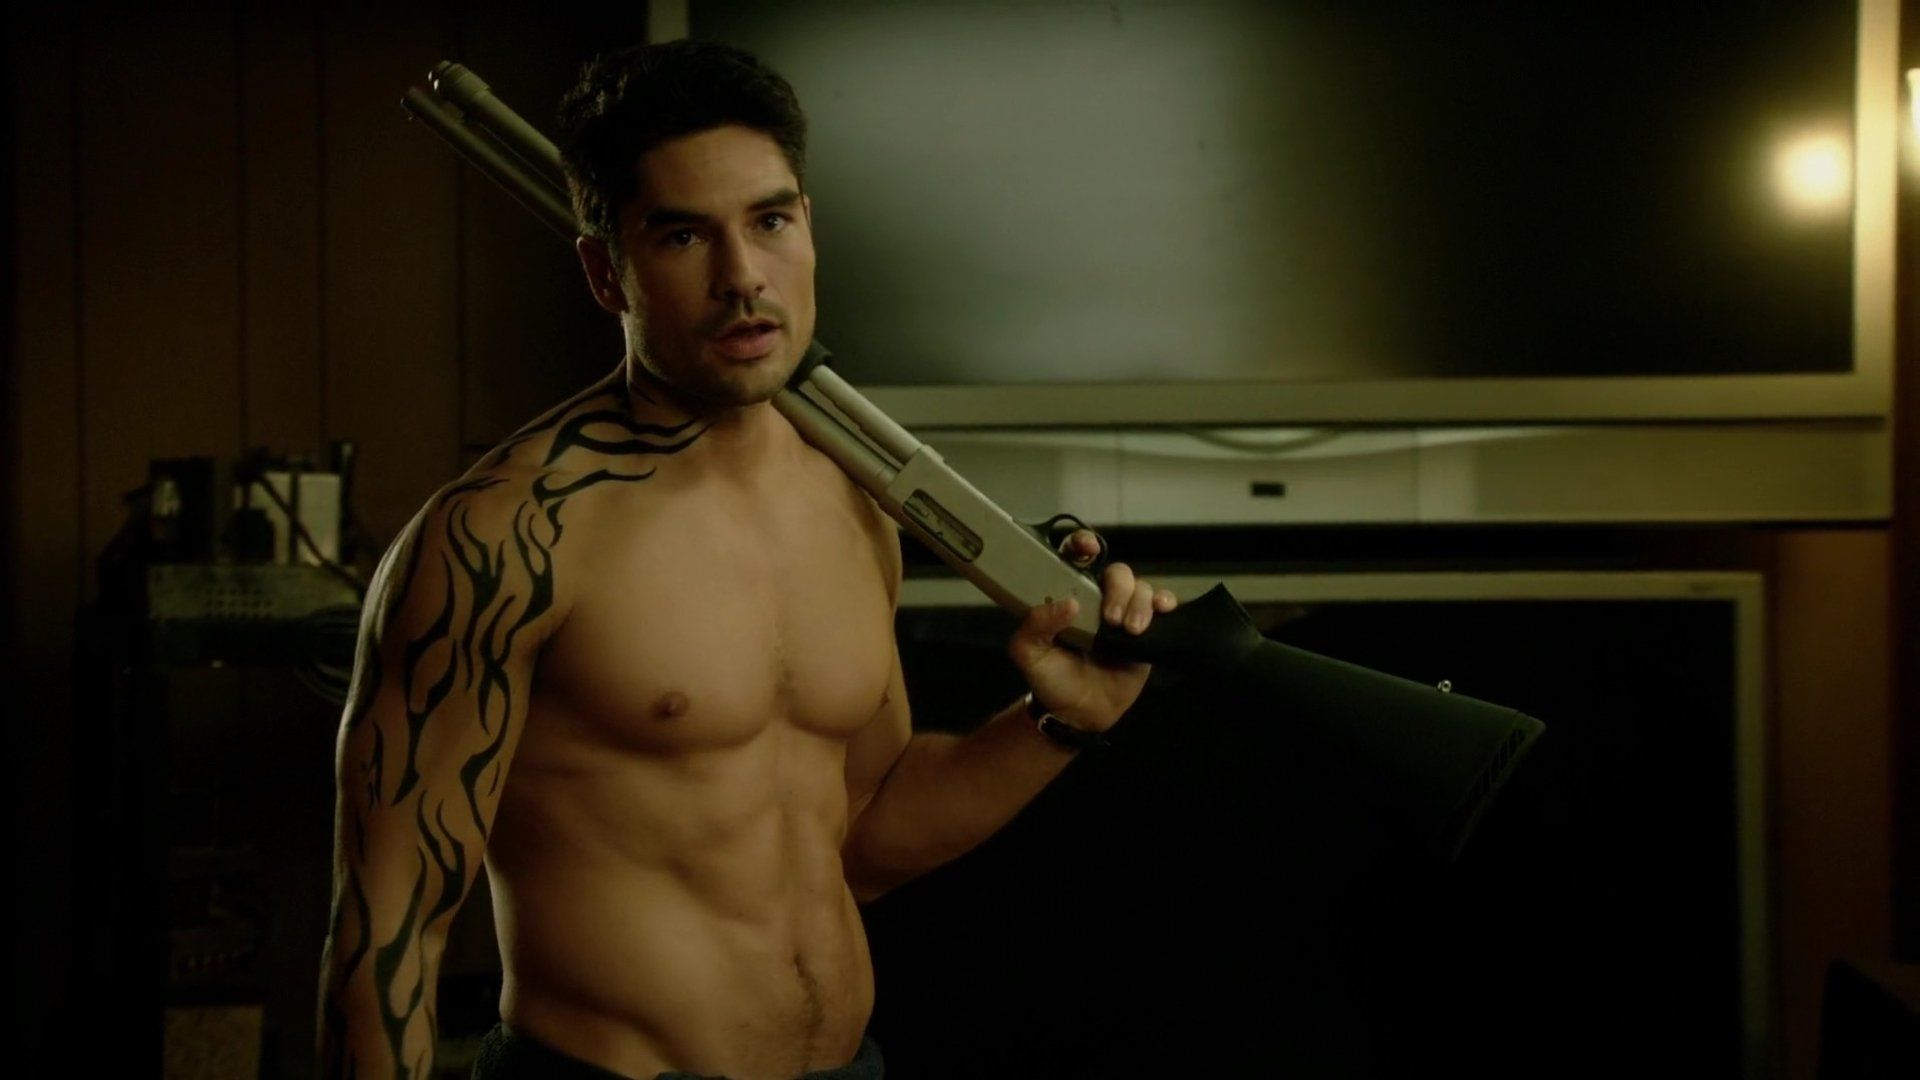 Bondage From Dusk Till Dawn The Series S02e05 Tvmaze